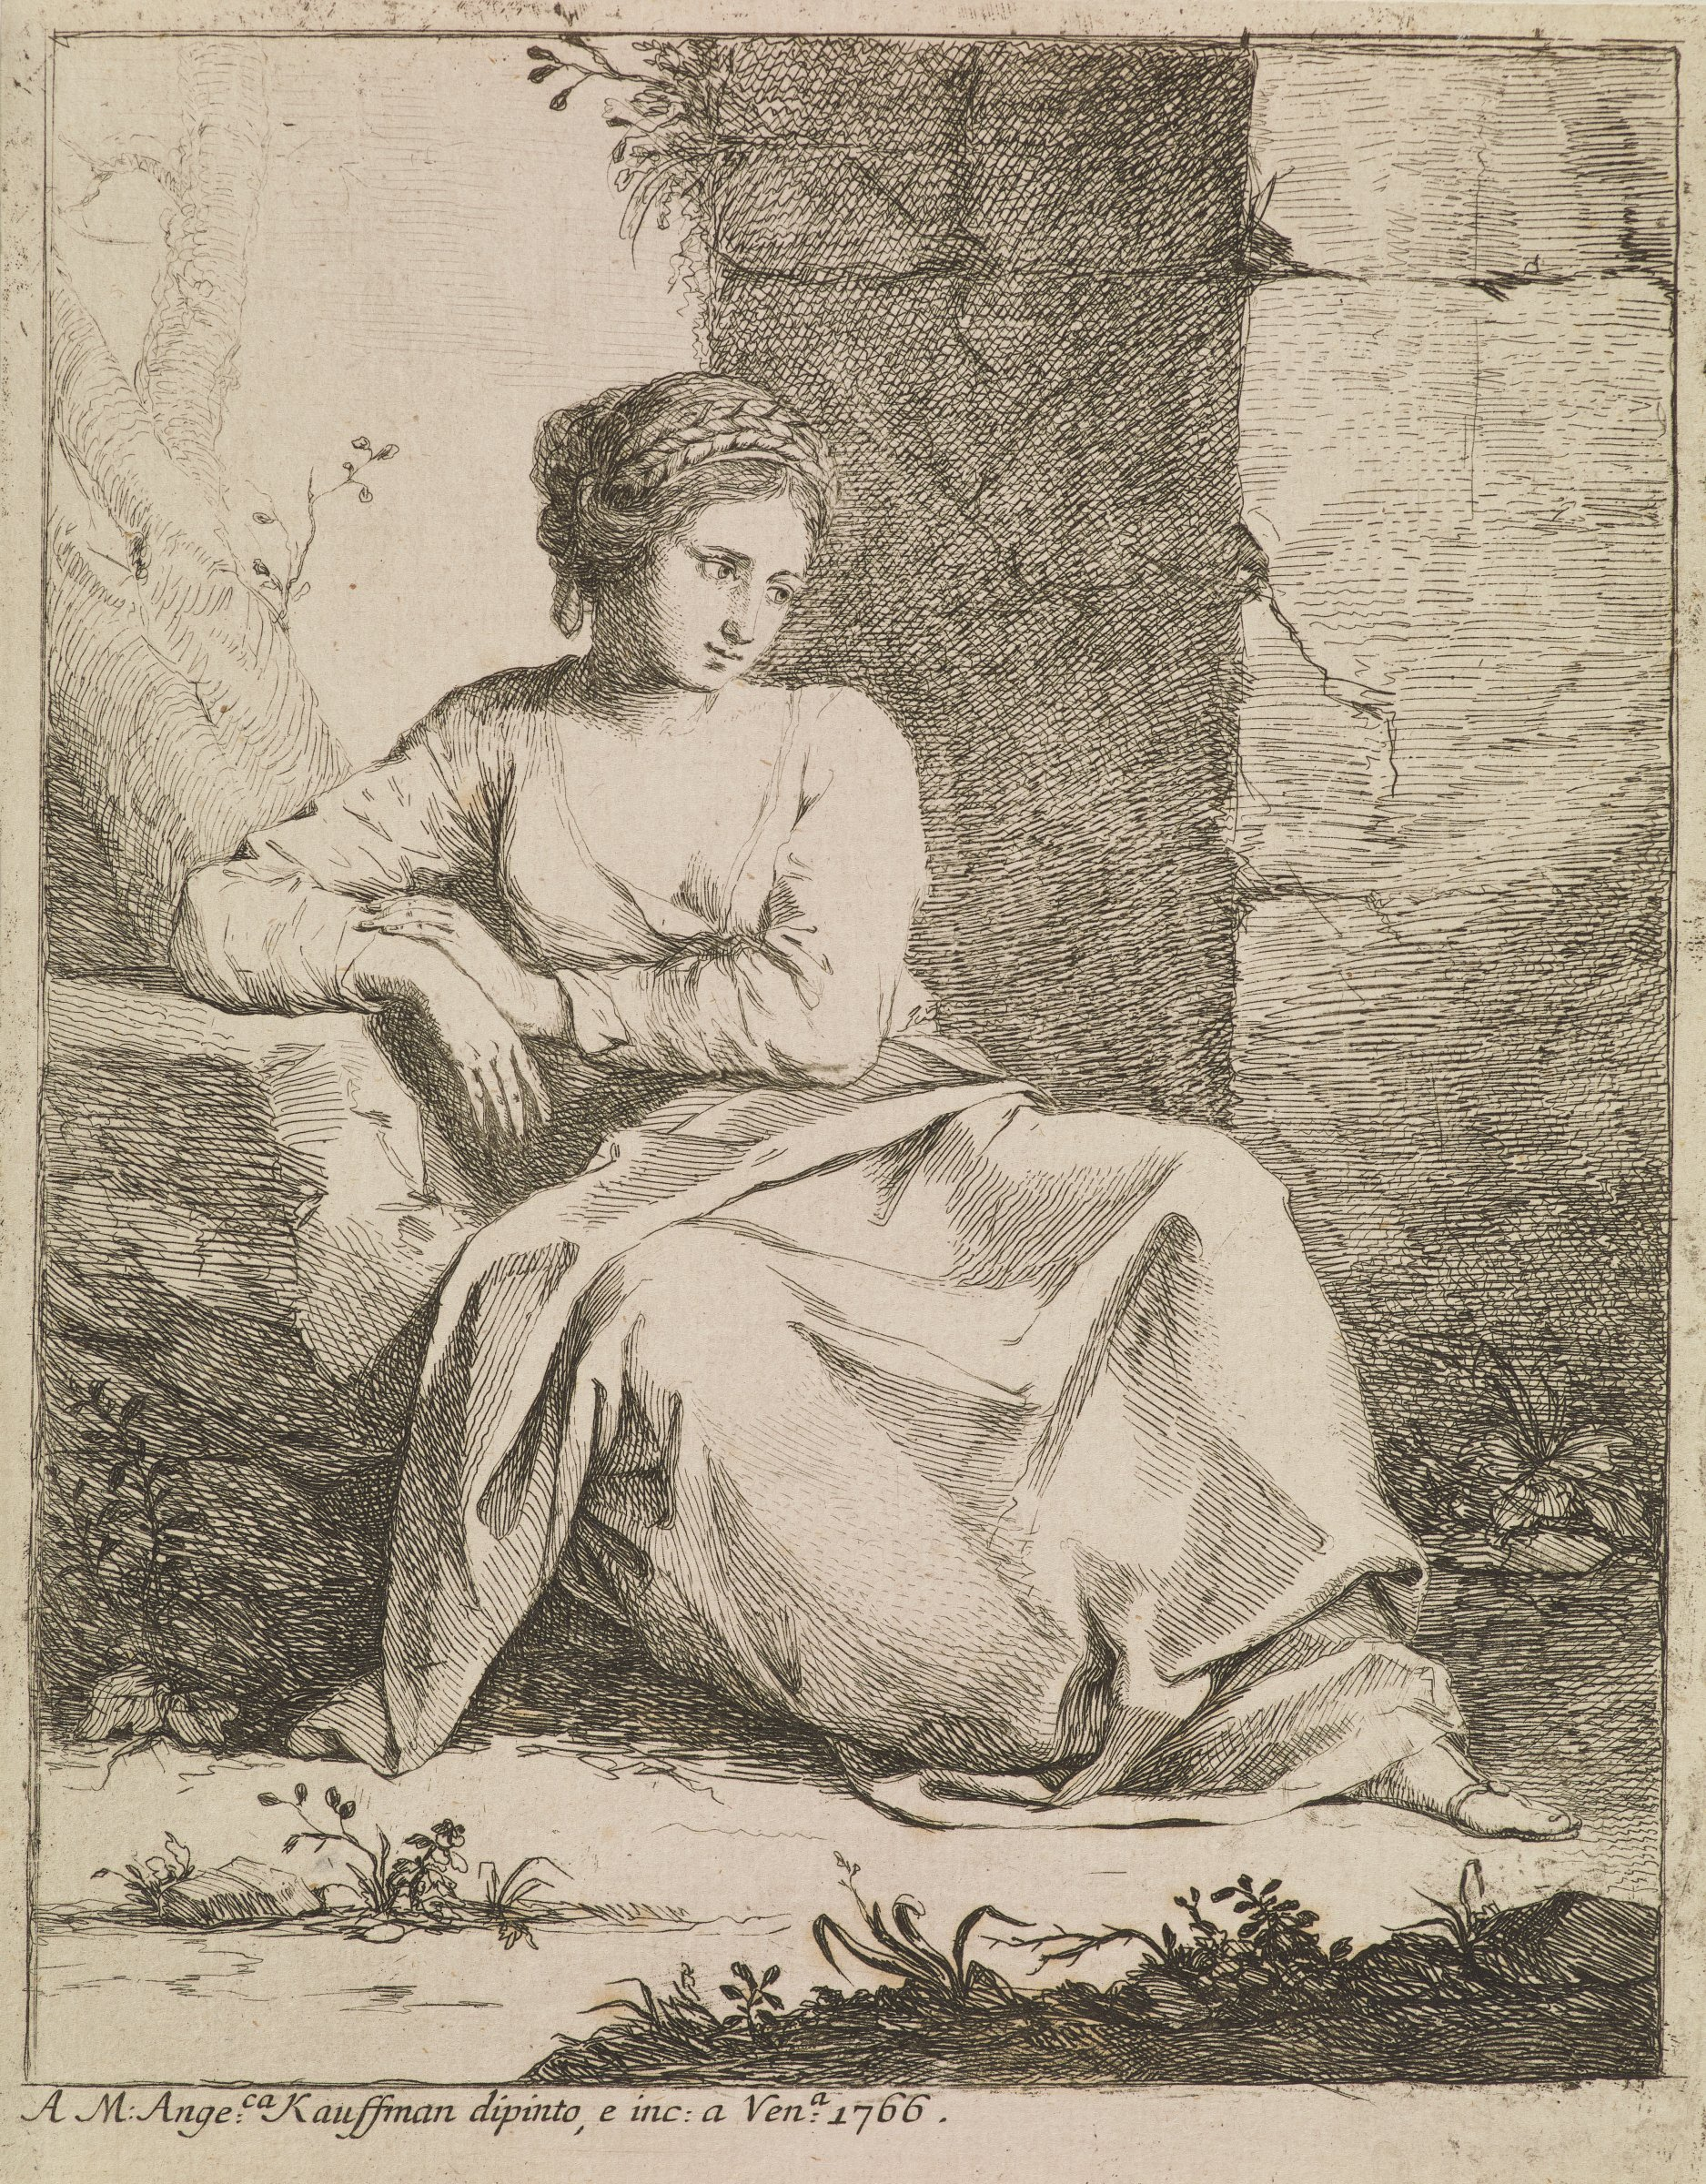 A woman sits on the ground with her arm propped on a rock. She looks to the right.